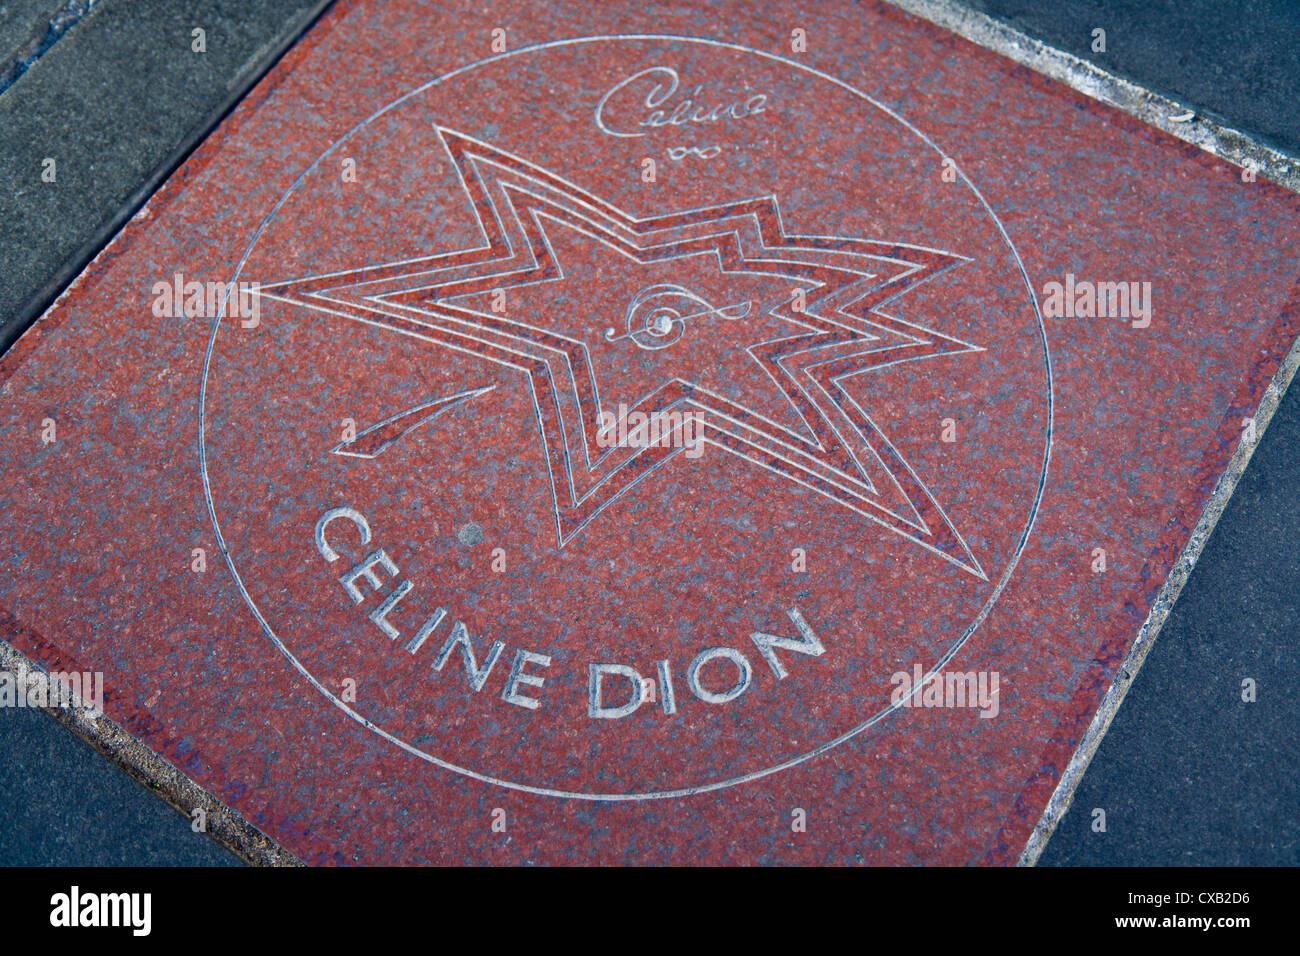 Closeup of Celine Dion's star on the sidewalk, Canada's Walk of Fame, Entertainment District, Toronto, Ontario, - Stock Image